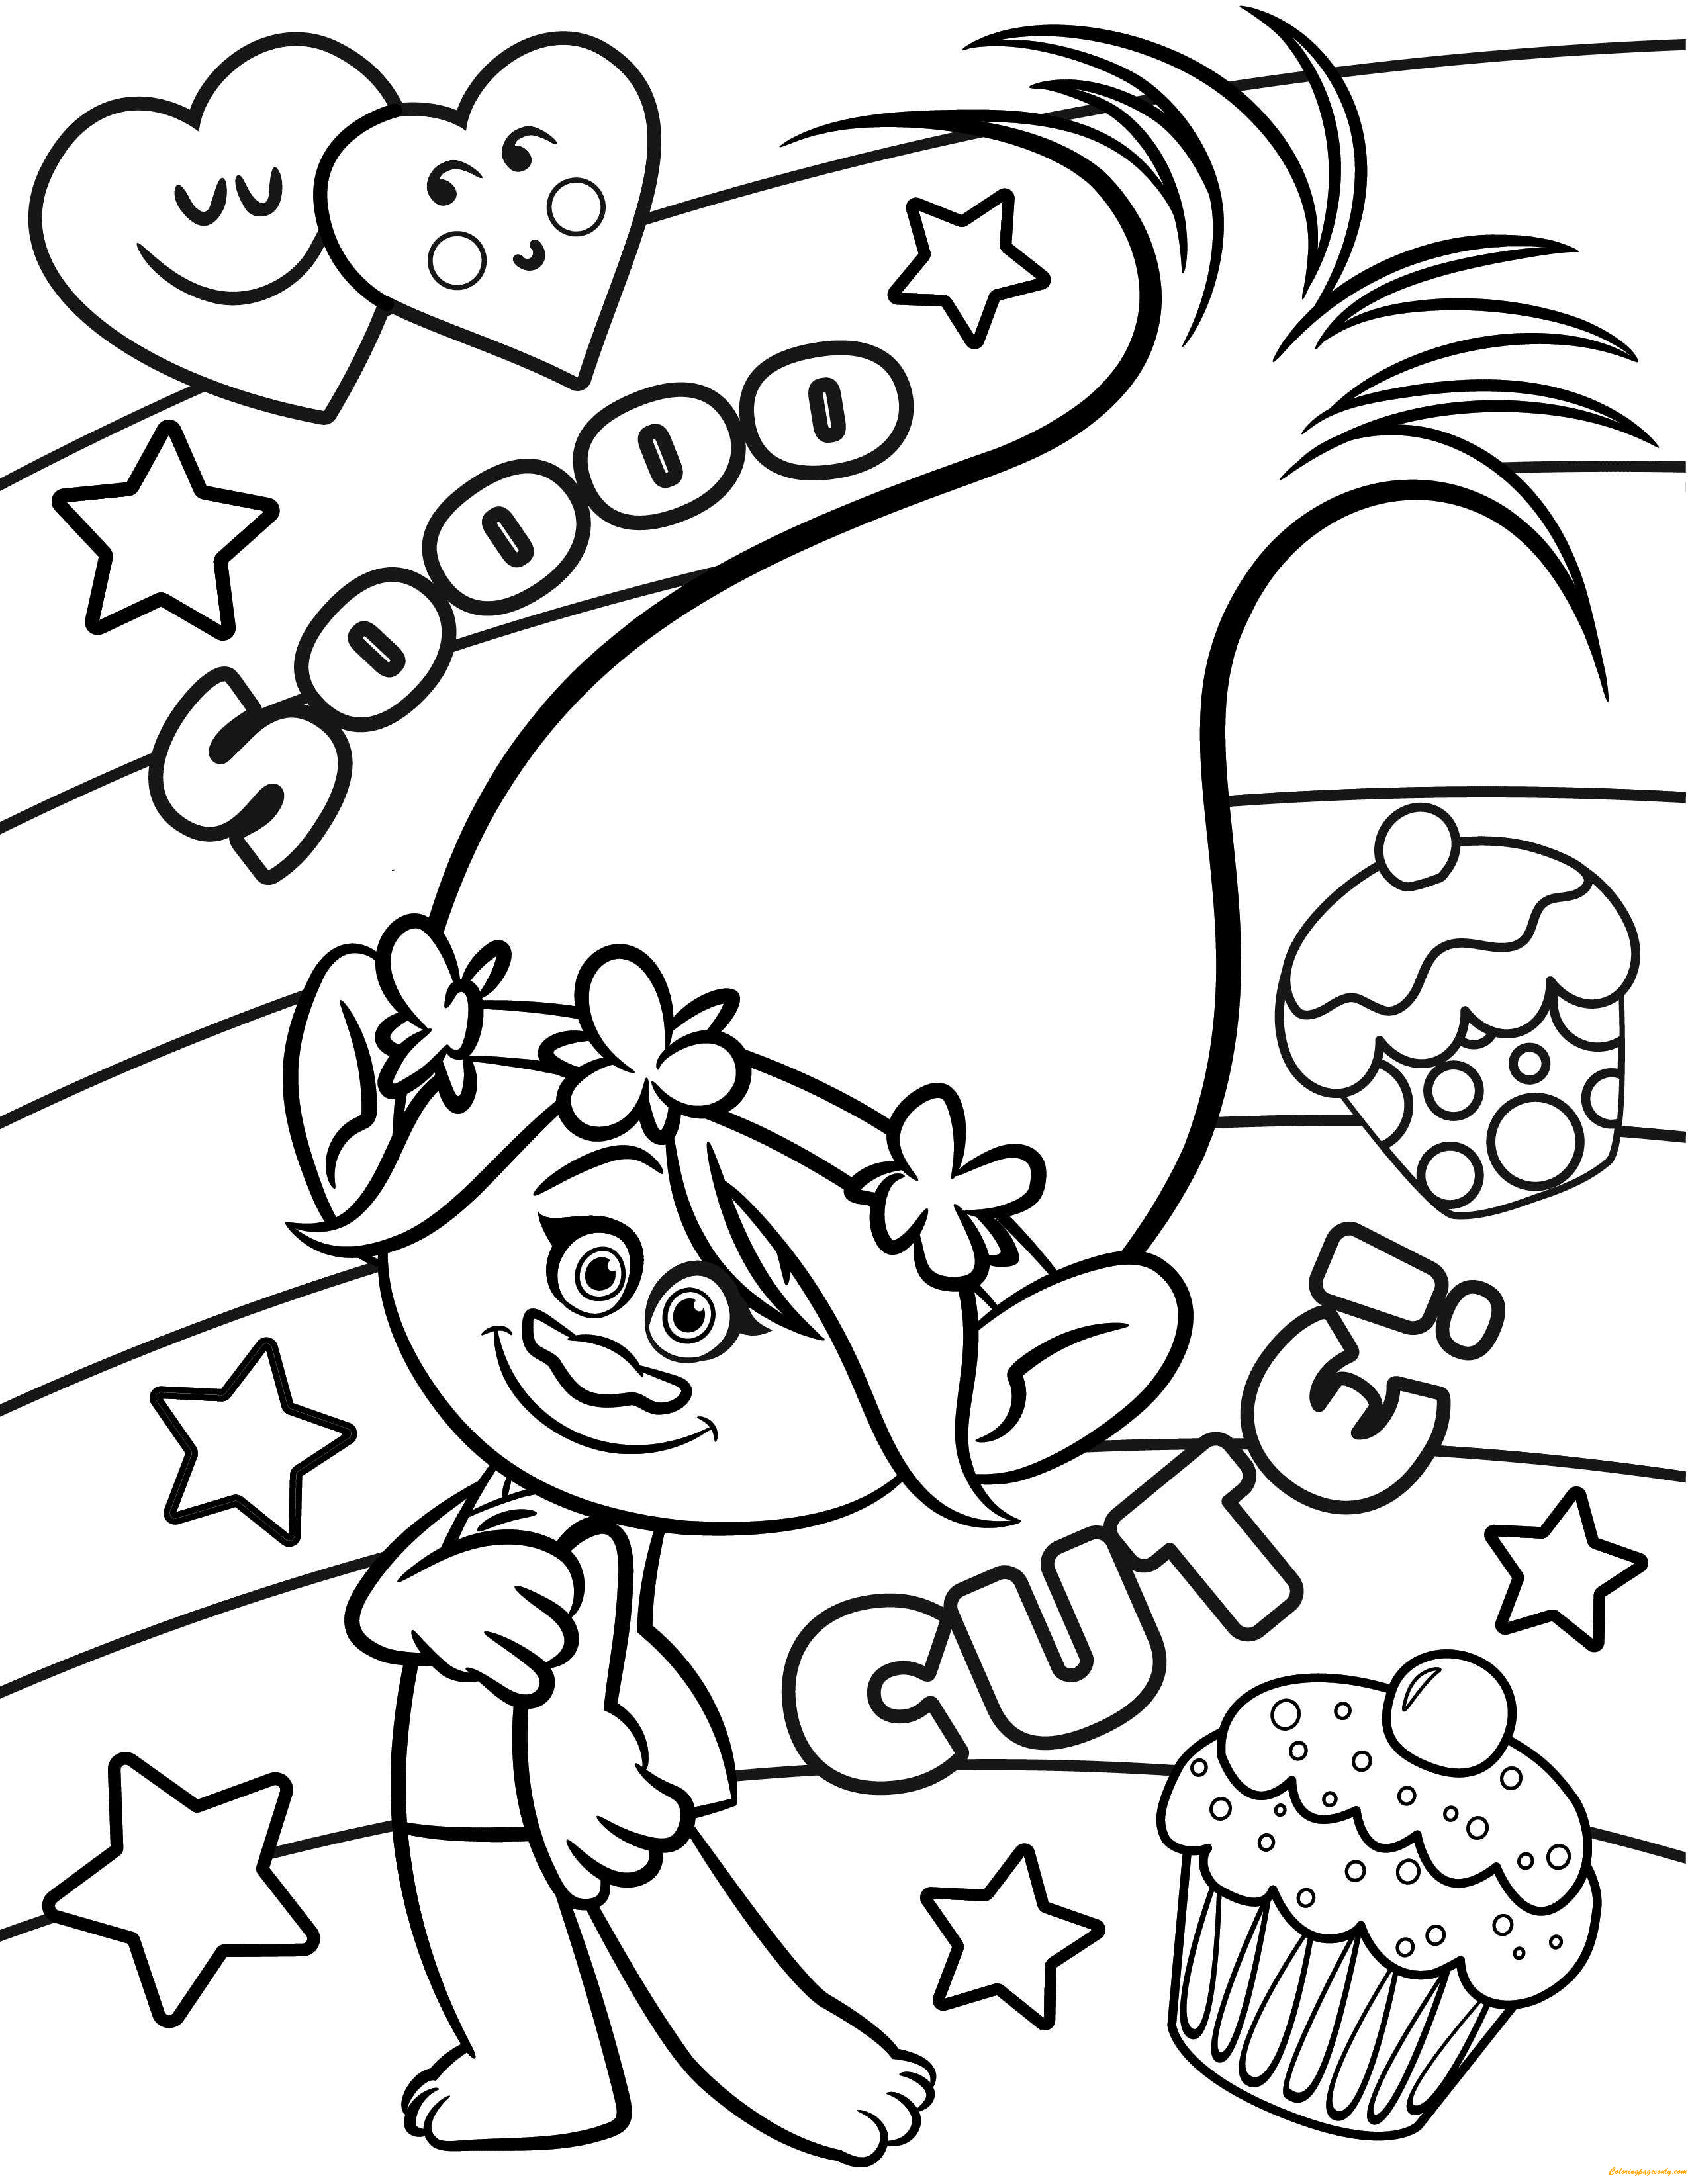 Cute Trolls Coloring Pages - Cartoons Coloring Pages ...